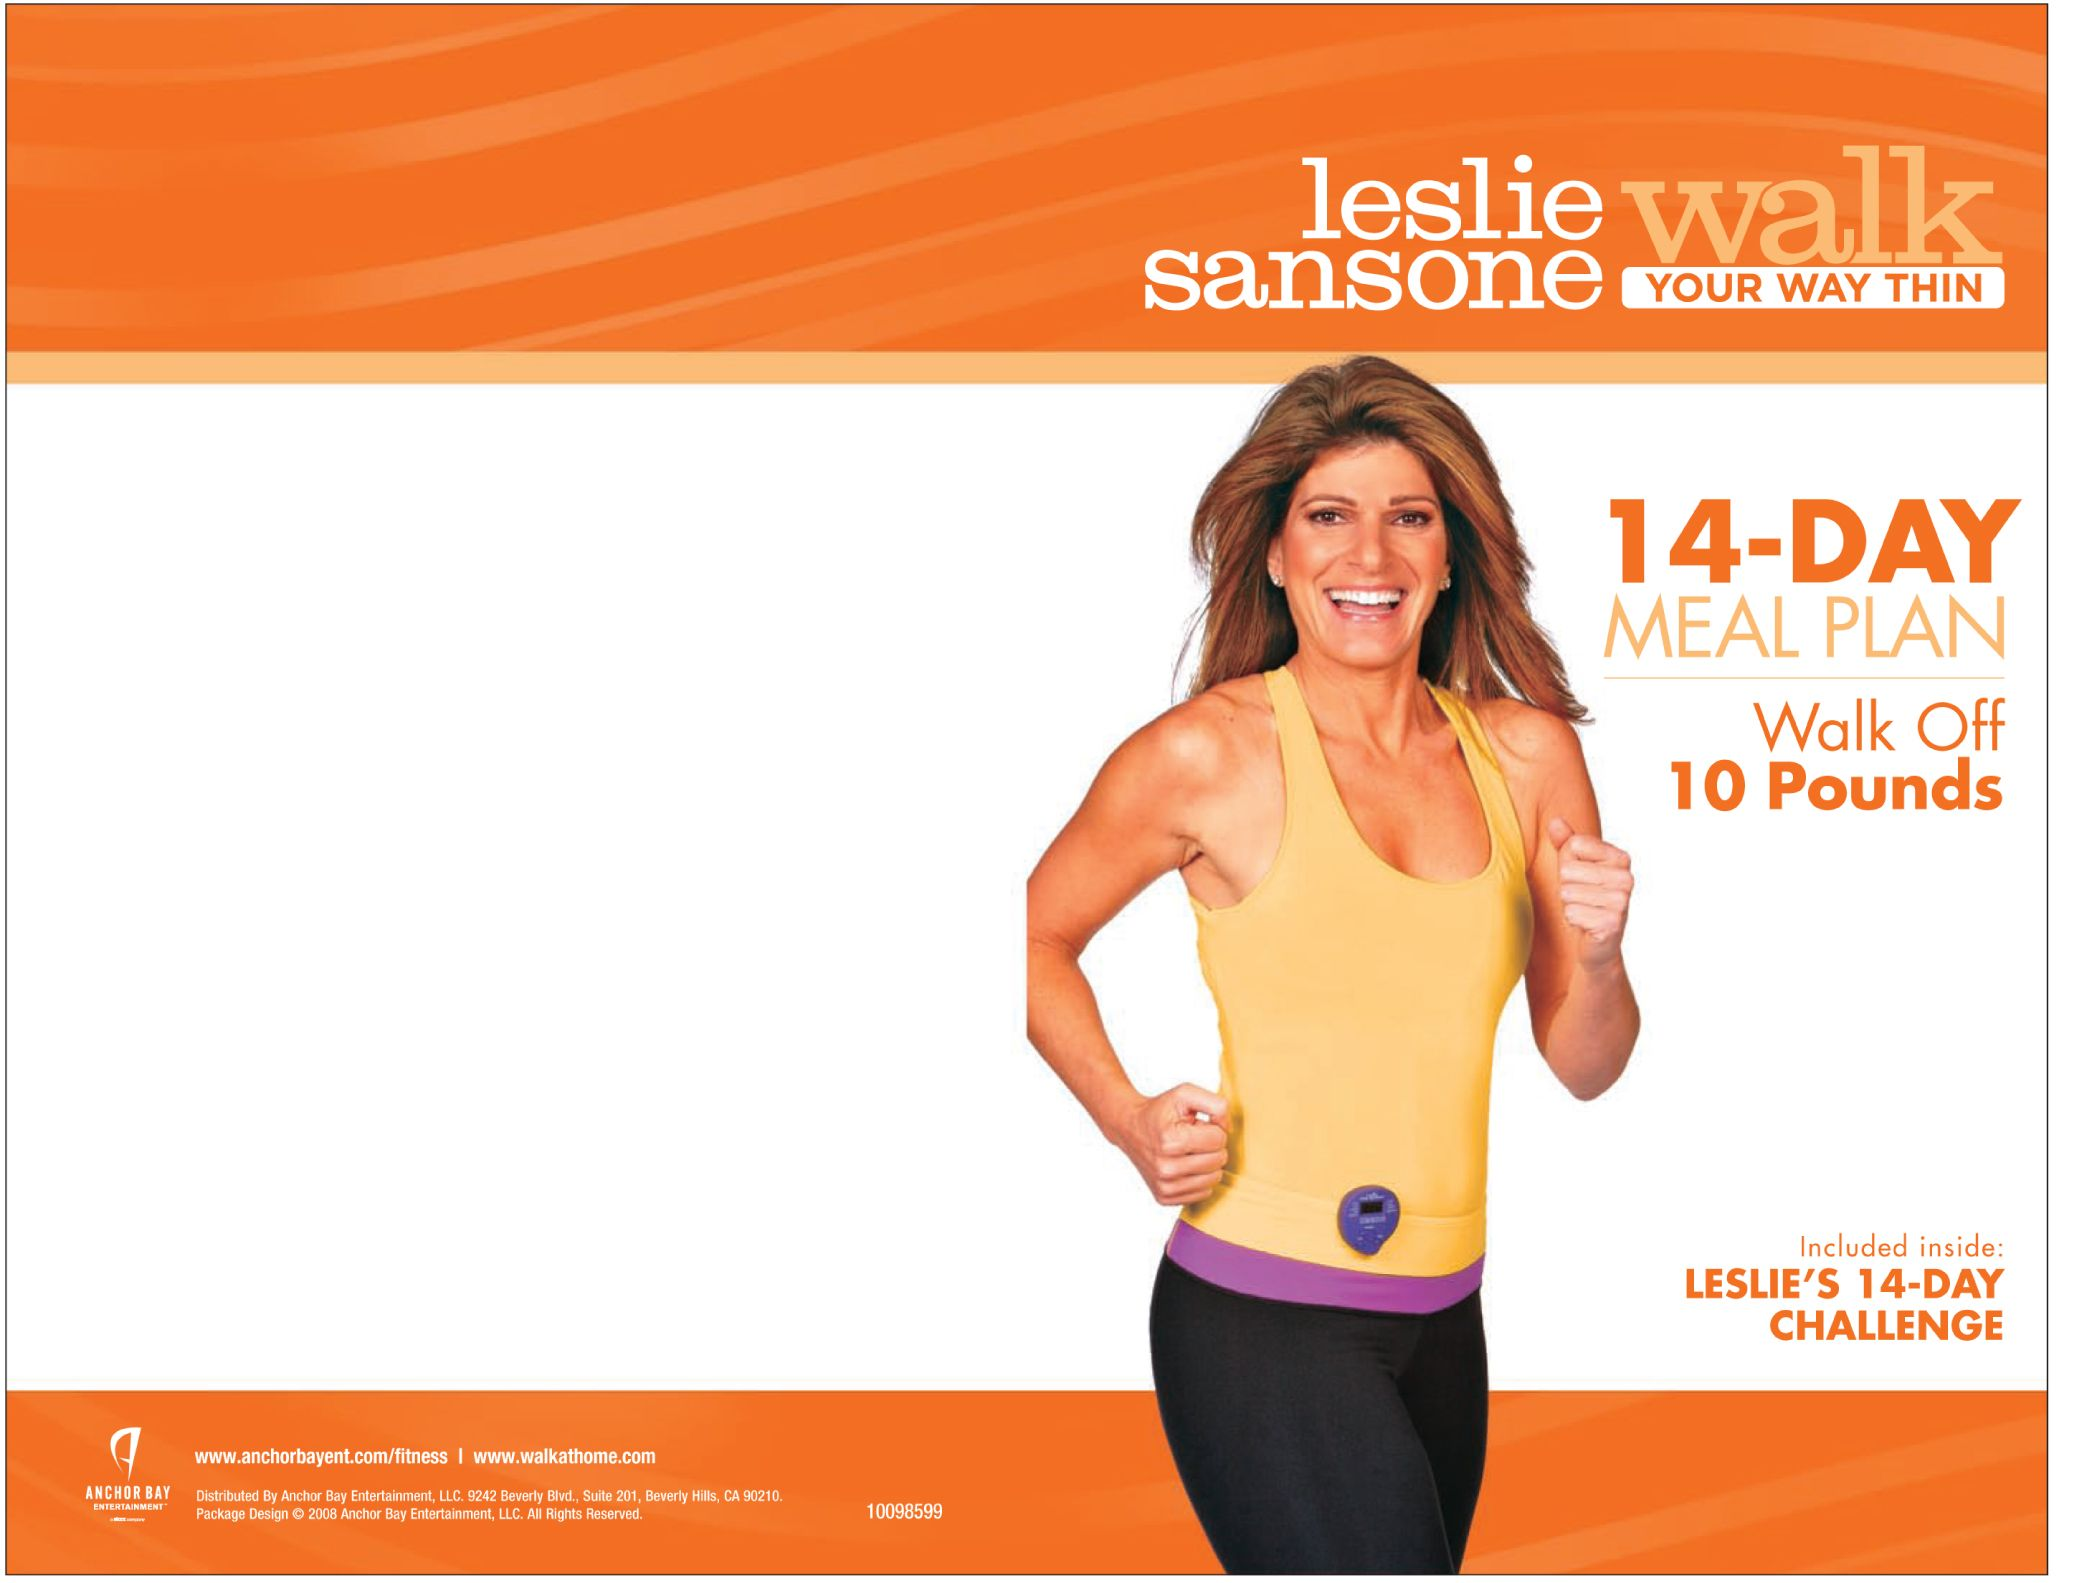 Where can you buy Leslie Sansone's